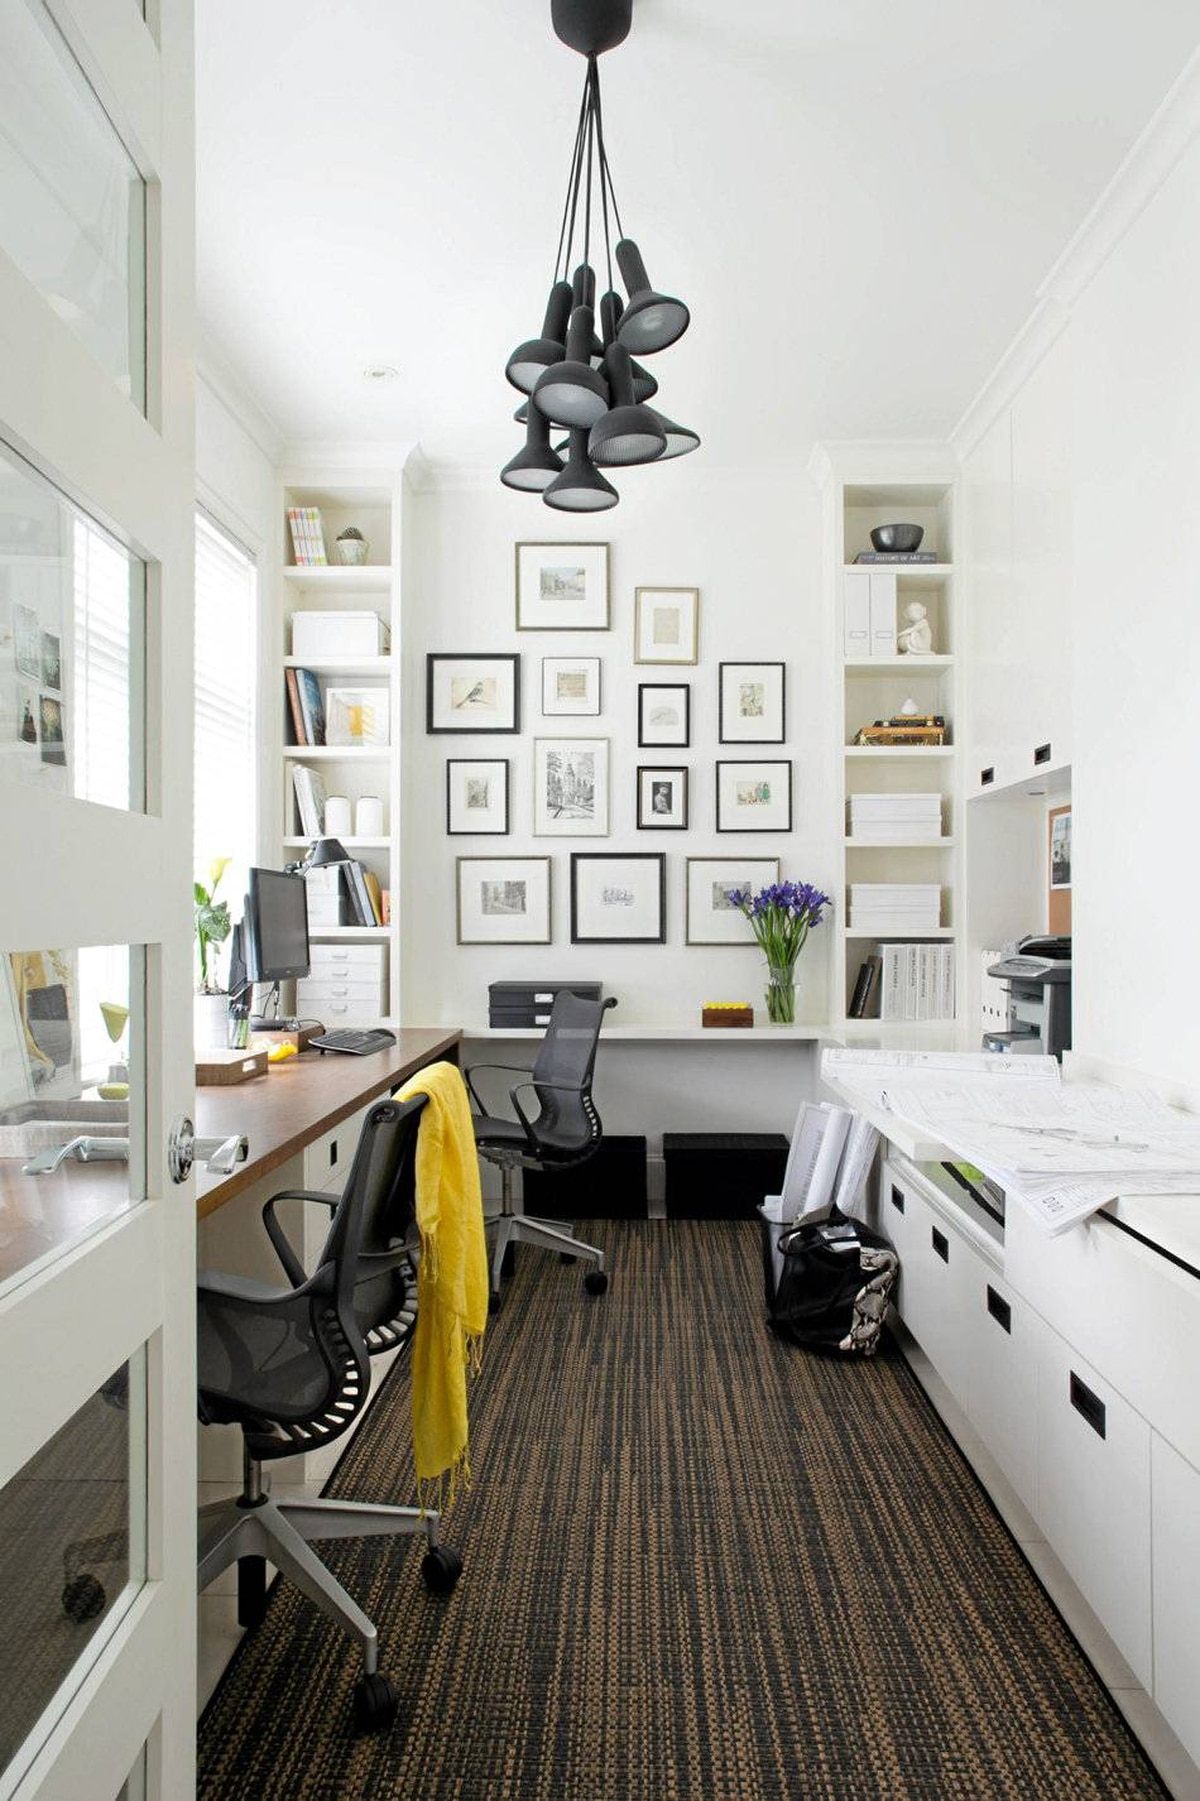 The home office of Vancouver developers Peter and Brenda Juric. Interior design by Kelly Deck Design.